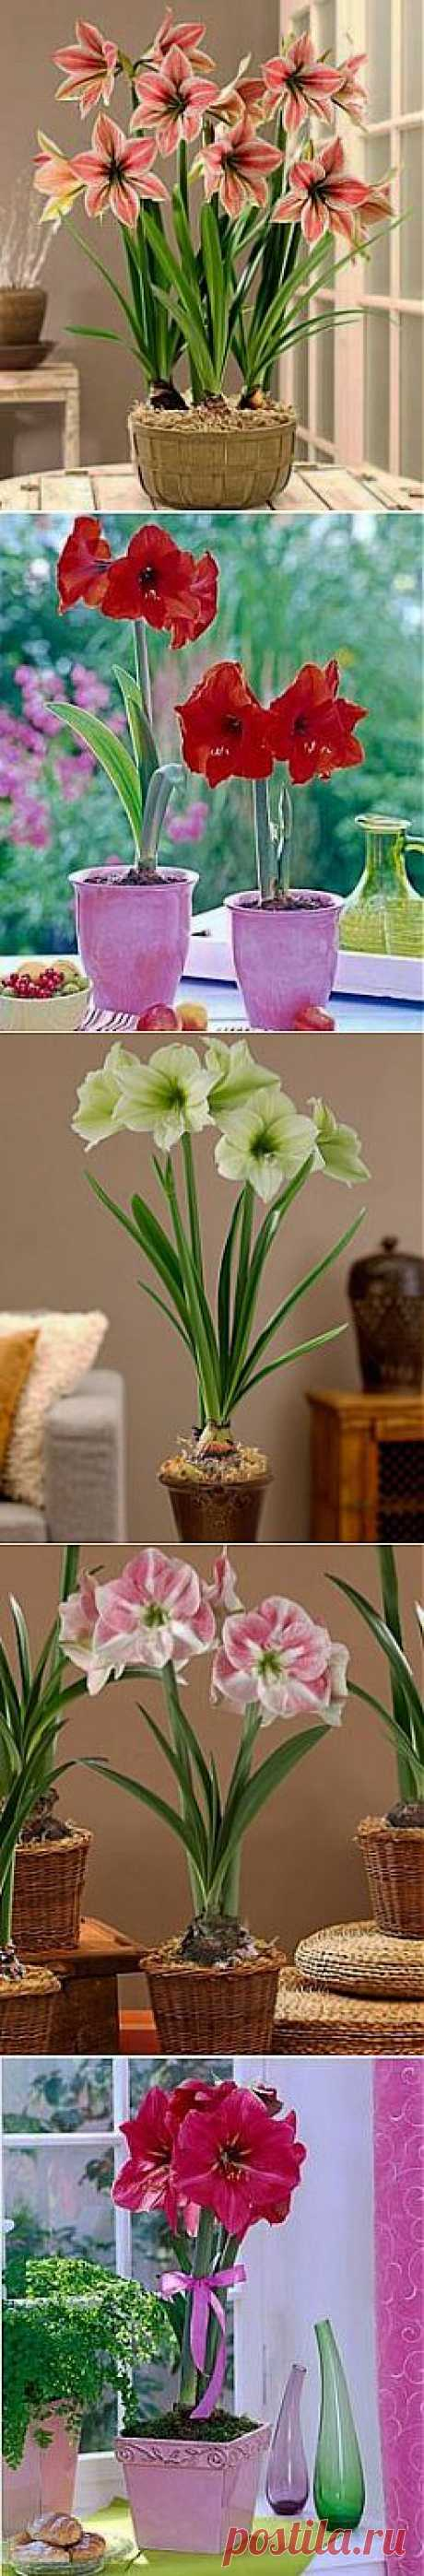 Hippeastrum leaving and cultivation | GreenHome